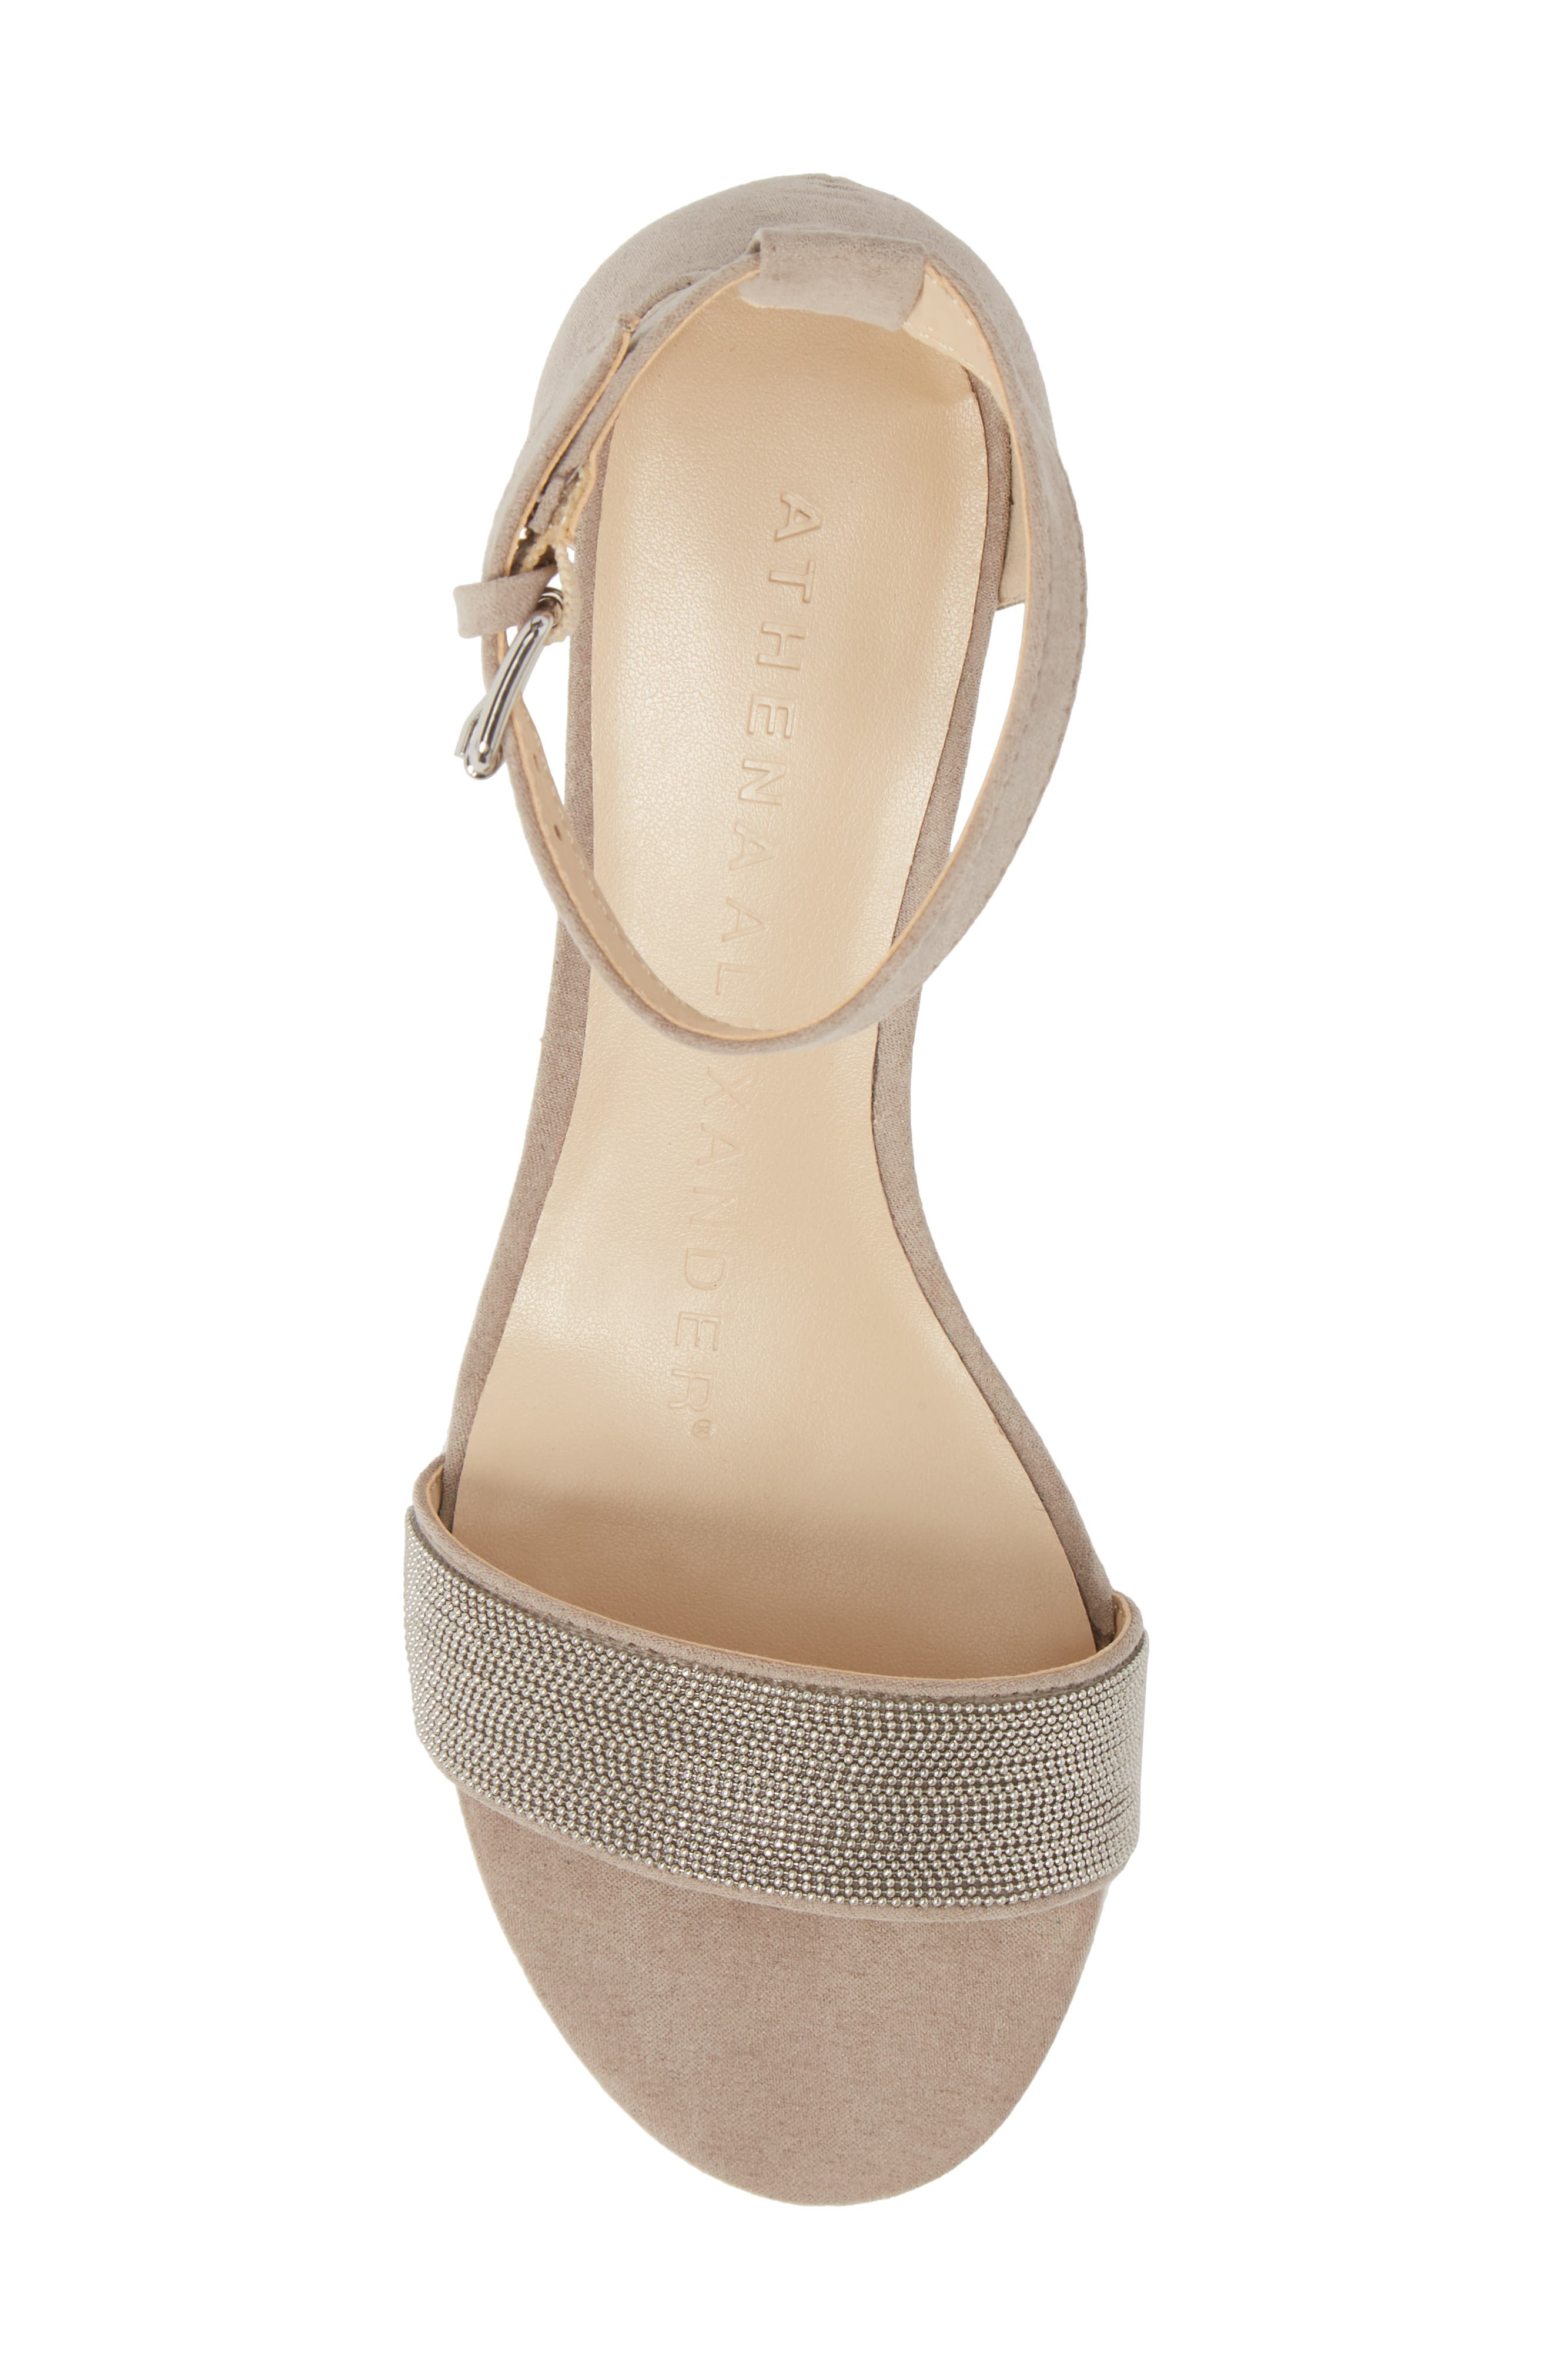 Enfield Ankle Strap Wedge Sandal,                             Alternate thumbnail 5, color,                             Taupe Suede